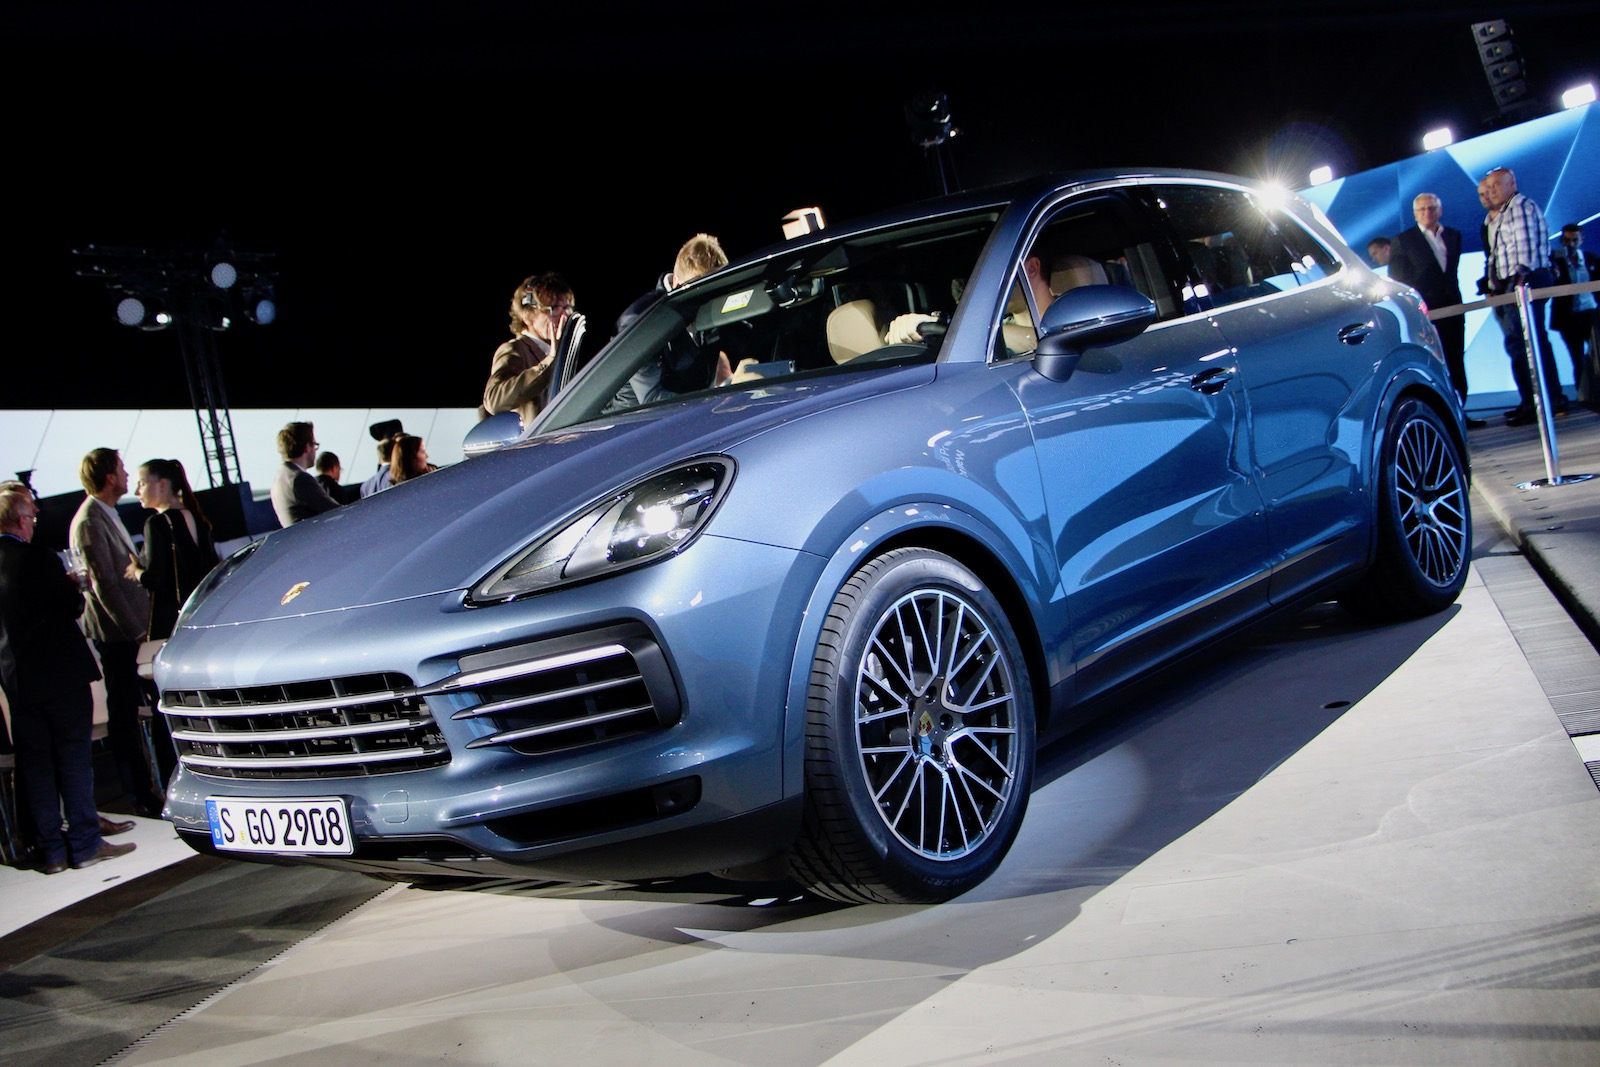 updated 2019 porsche cayenne revealed with 911 inspired styling news. Black Bedroom Furniture Sets. Home Design Ideas